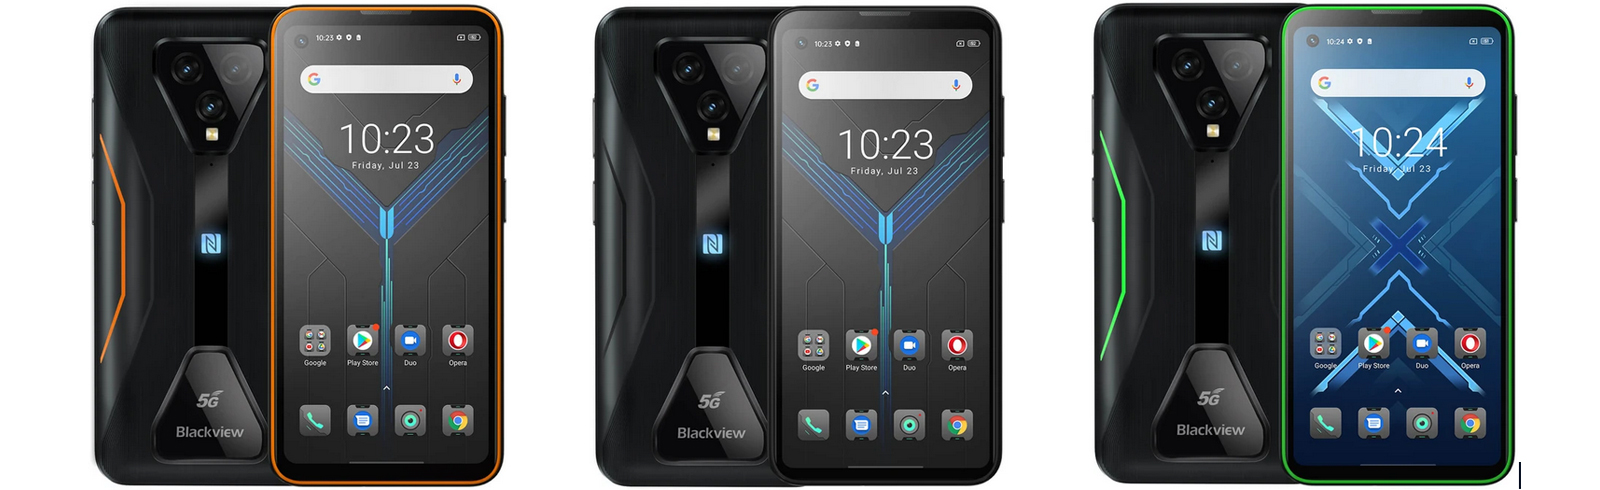 The Blackview BL5000 is unveiled with Dimensity 700 chipset